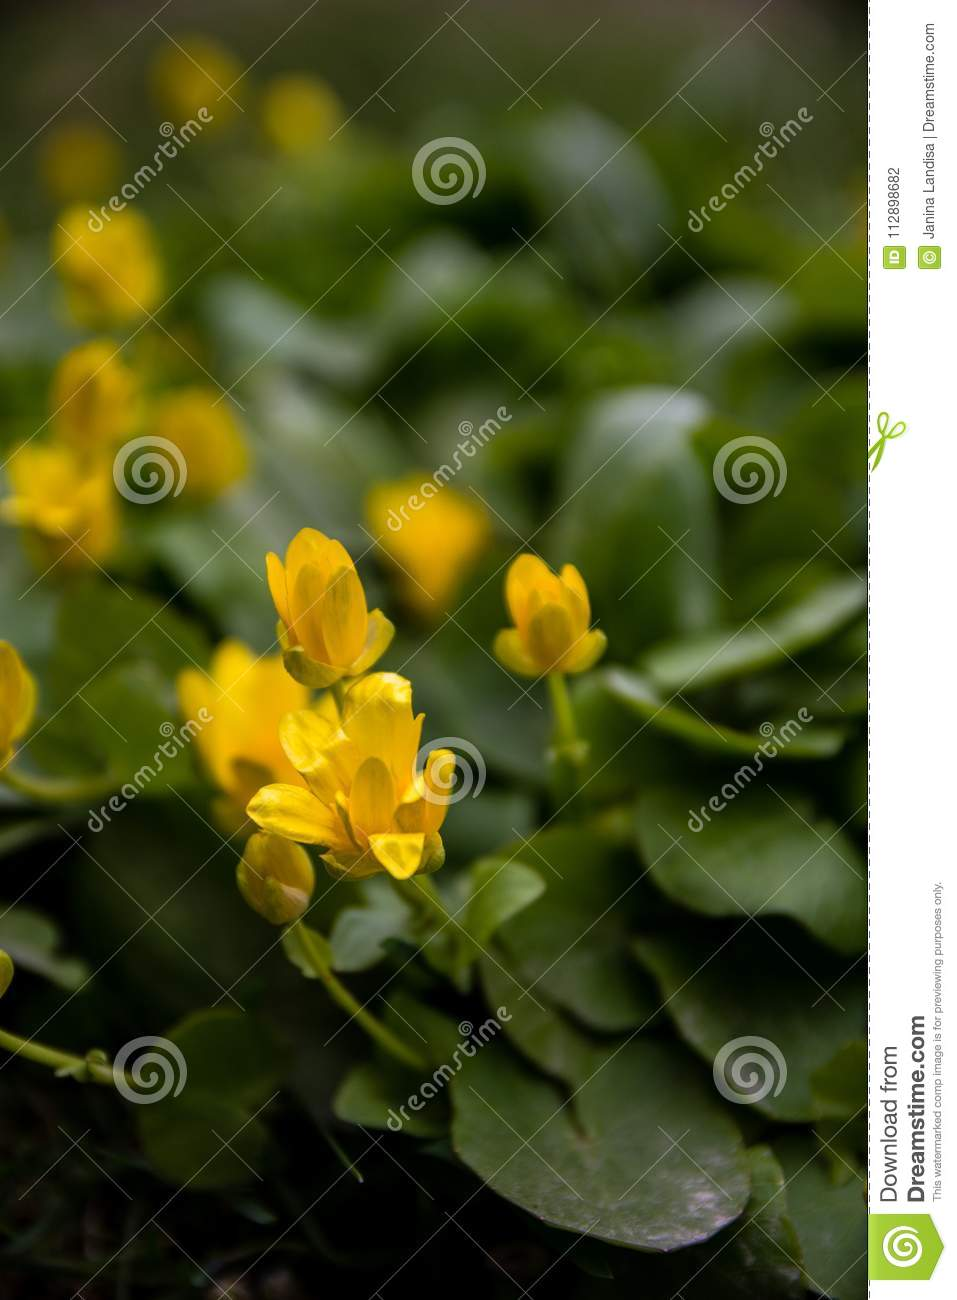 Blurred summer background with blooming calendula flowers, marigold. Beautiful Floral Wallpaper.